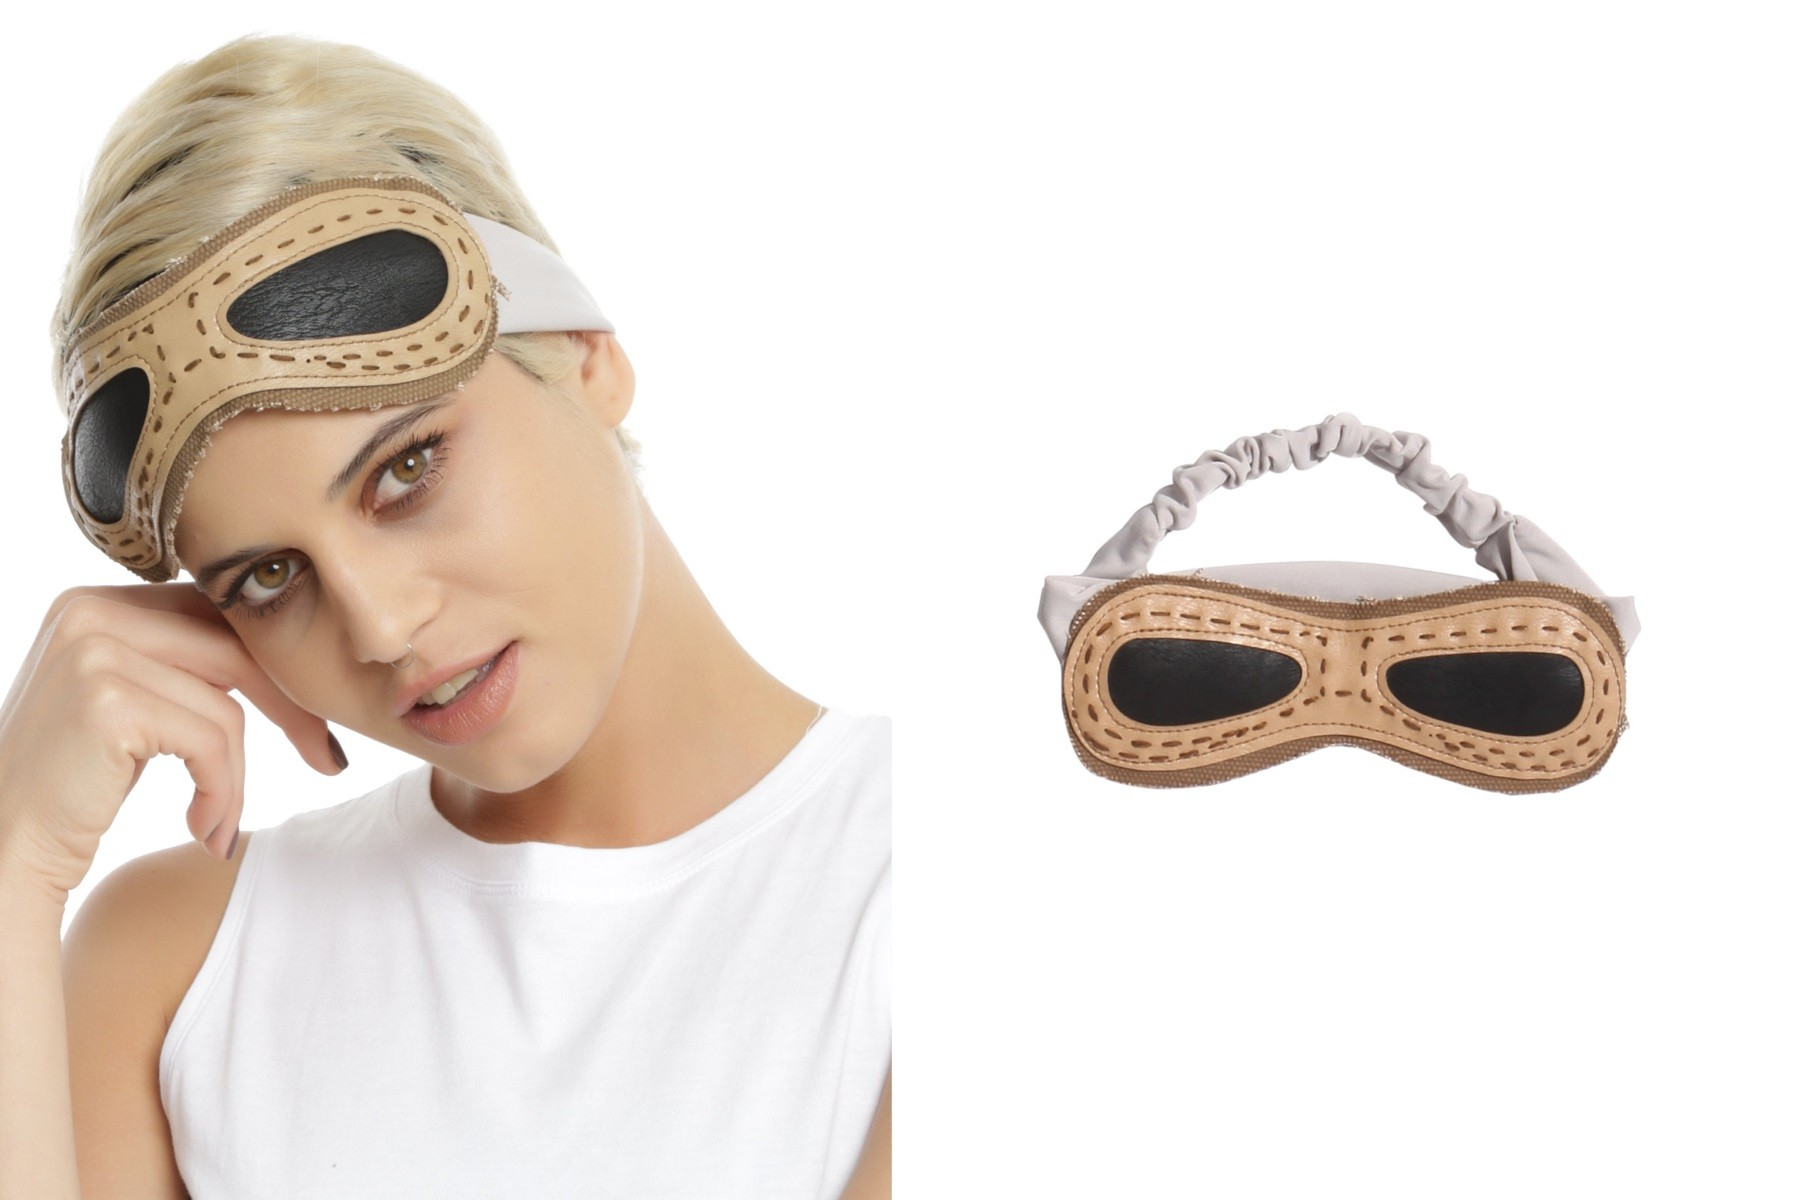 Rey goggles headband available at Hot Topic